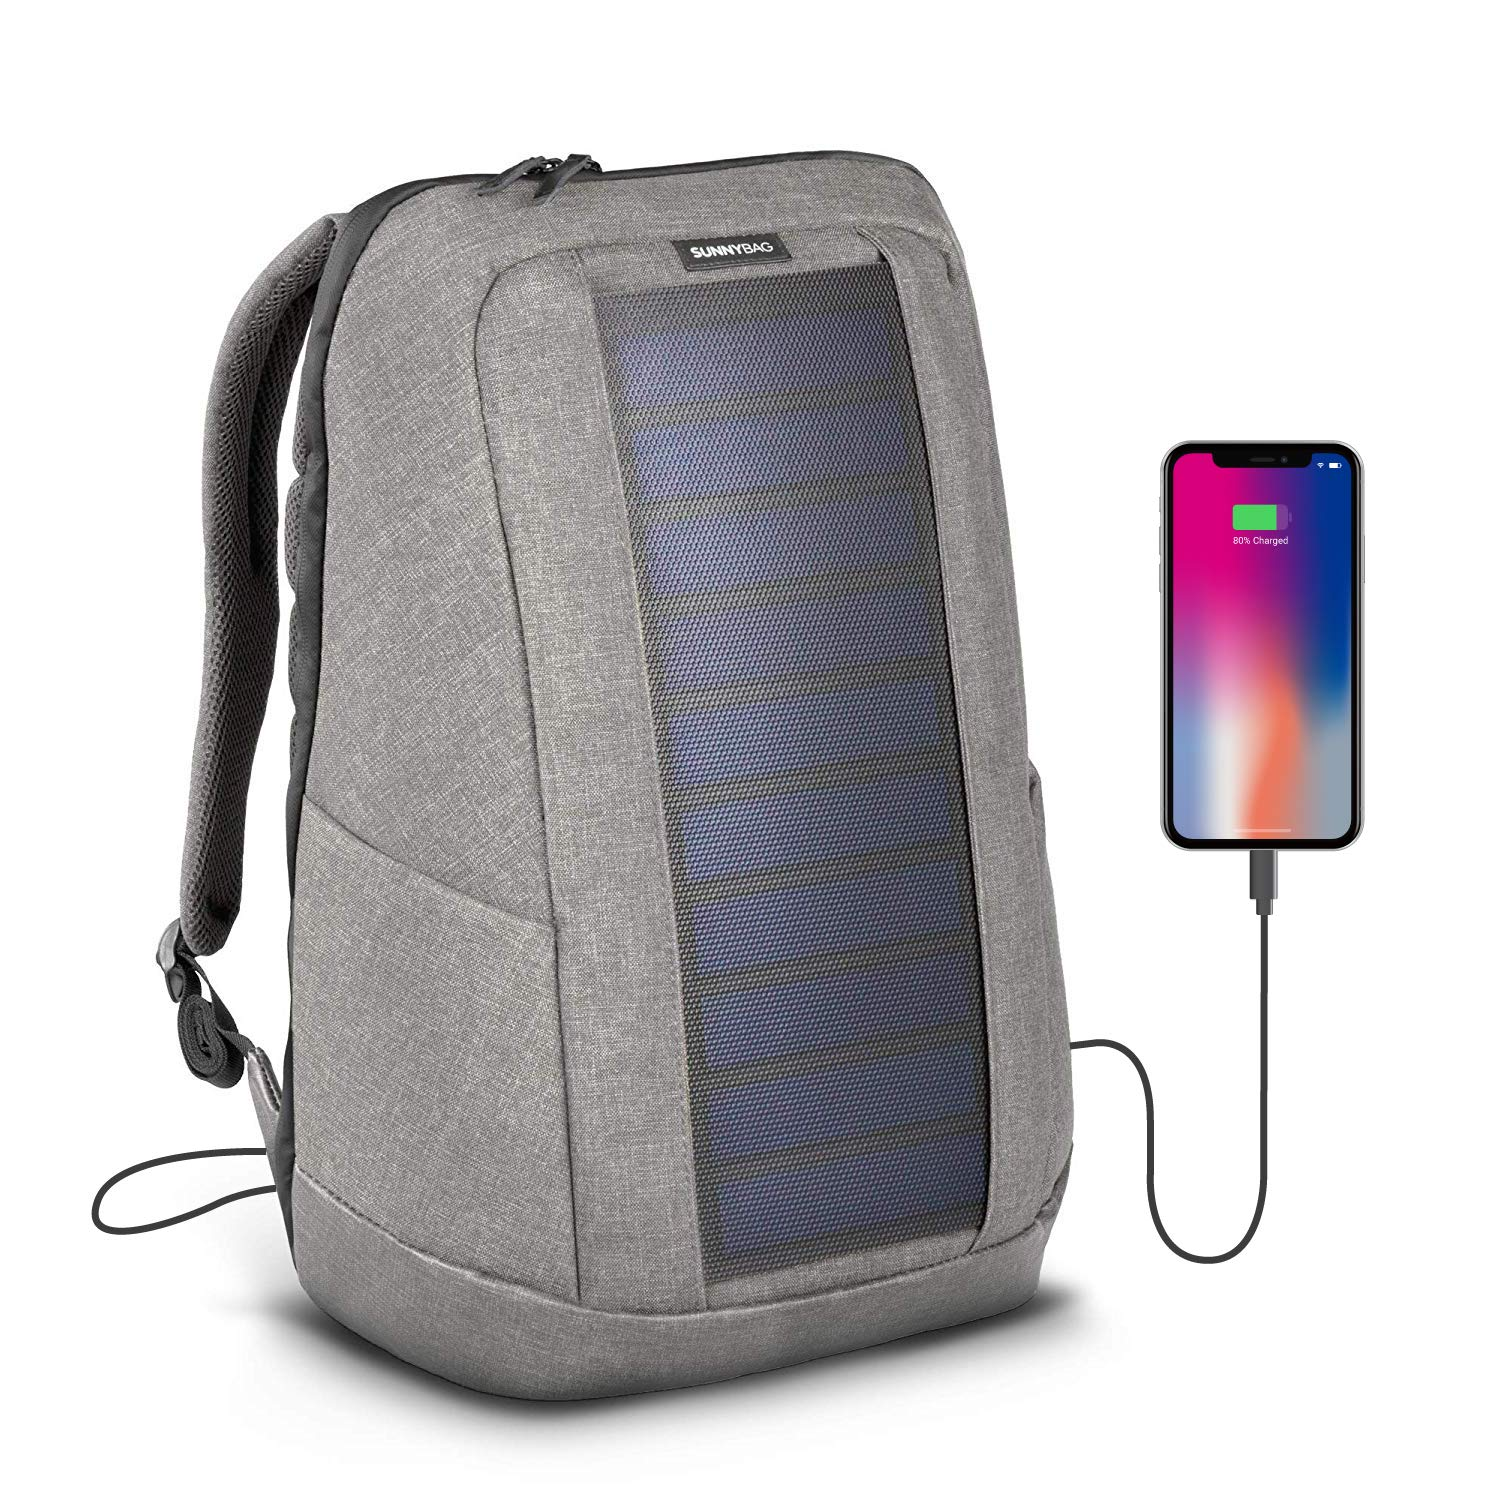 Sunnybag ICONIC solar backpack in cool gray | 7 Watt solar panel | Charge all Smartphones and portable USB devices | 20L volume by SUNNYBAG